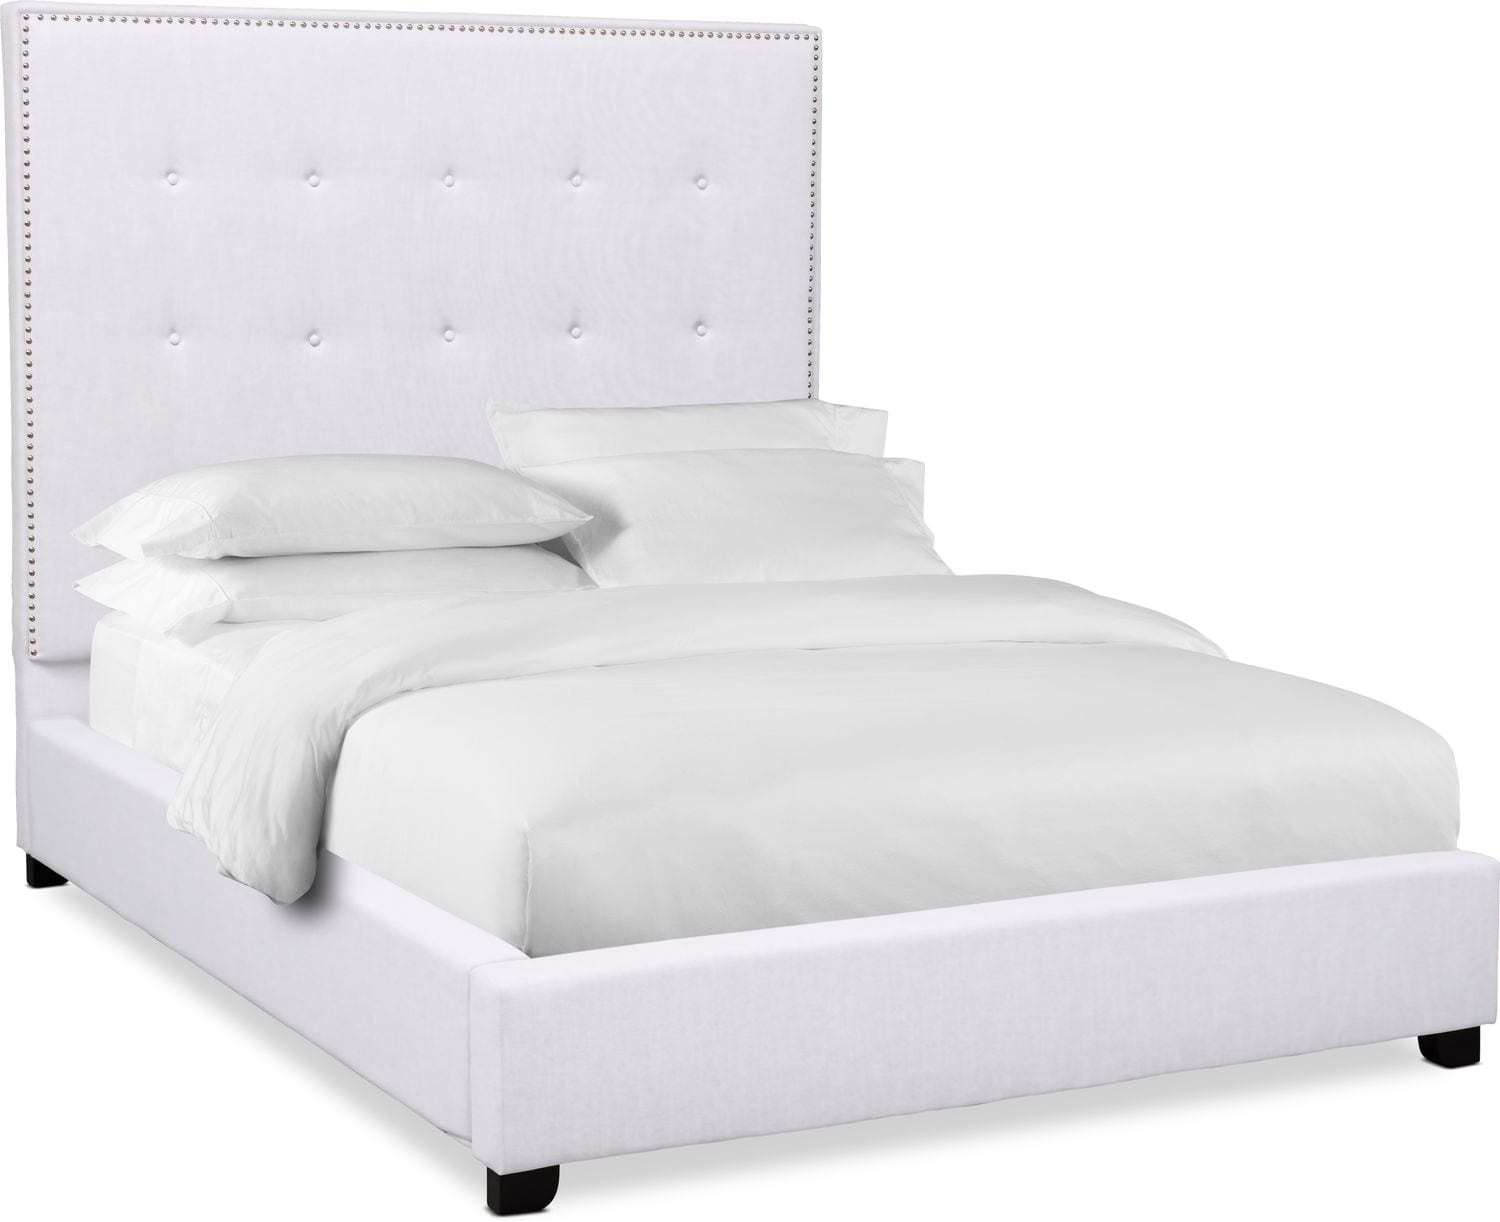 "Bedroom Furniture - Carter 68"" Upholstered Bed"